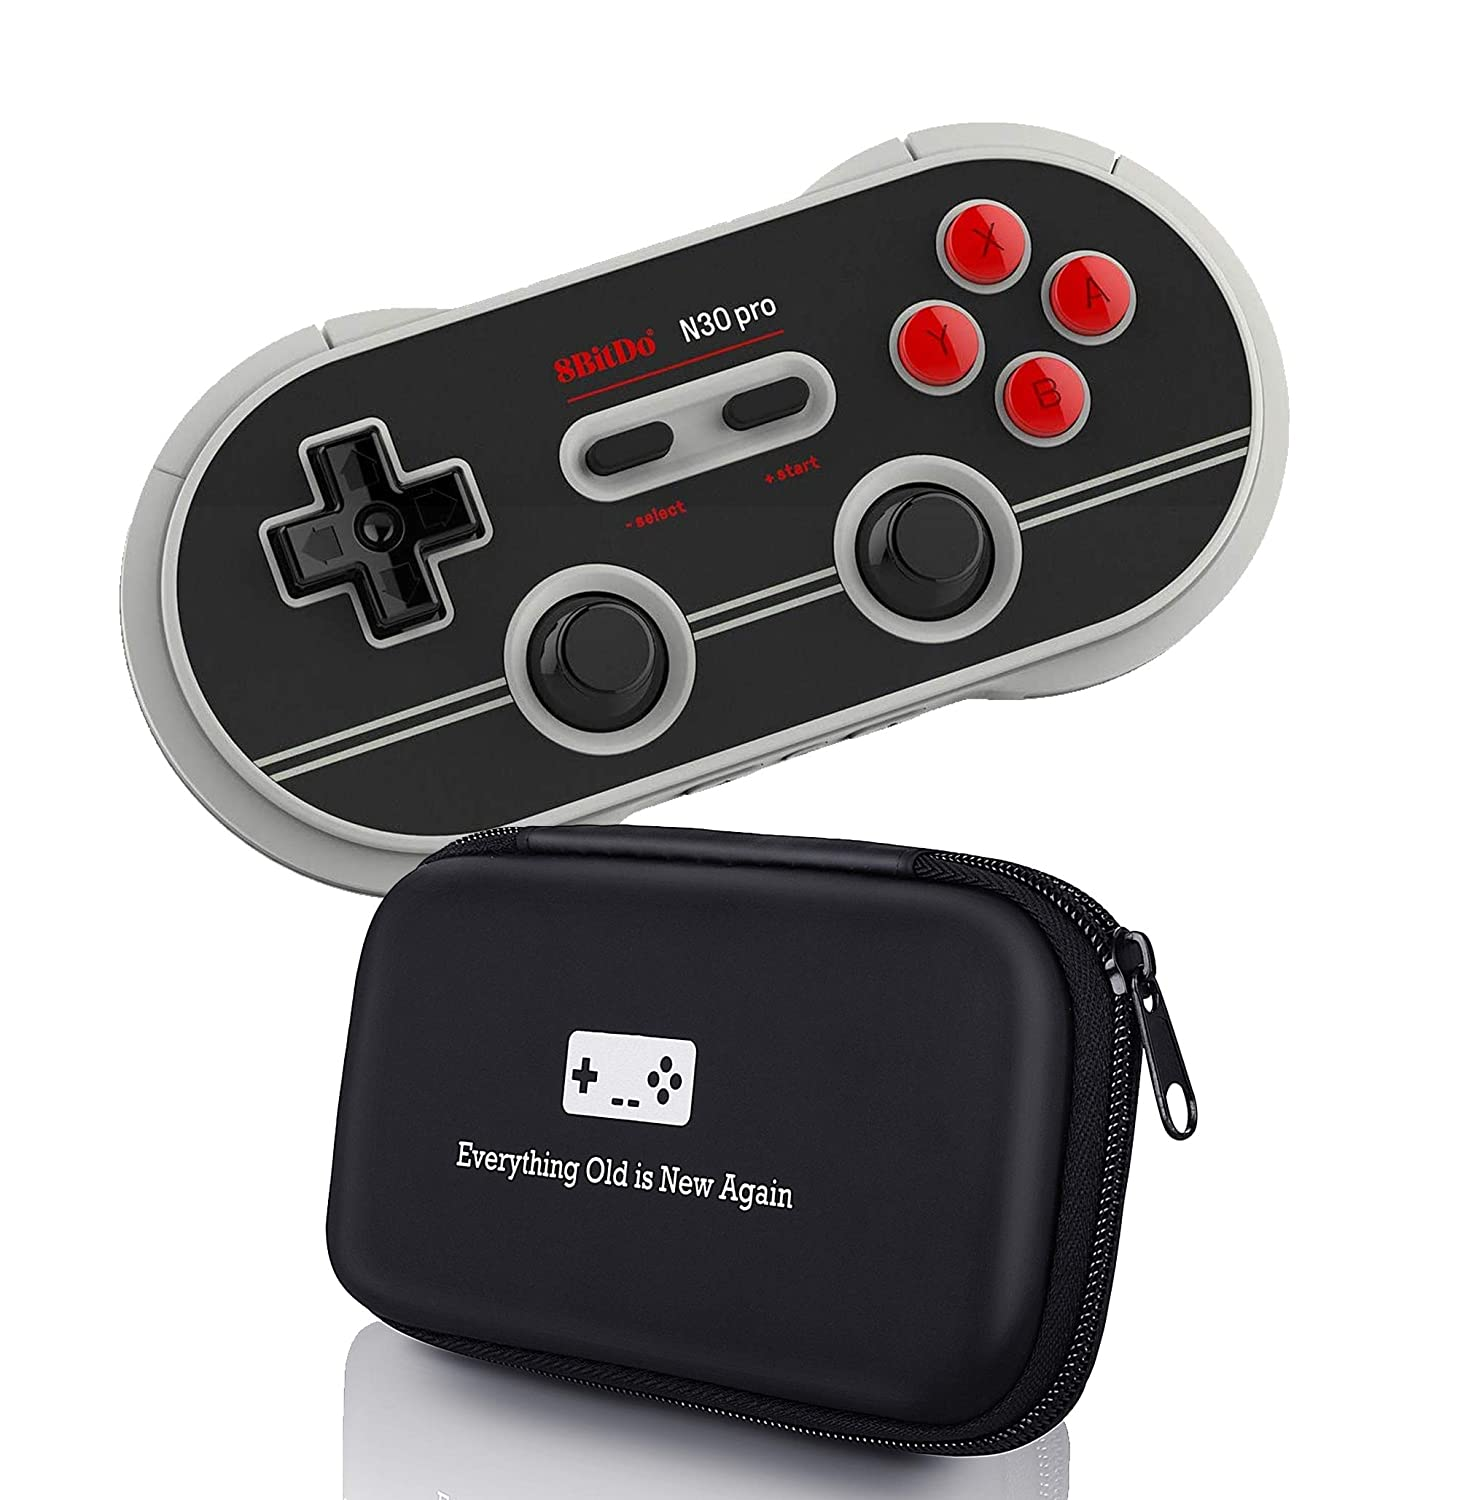 Geek Theory 8bitdo N30 Pro Controller Bundle Includes Nes30 Retro Bluetooth For Switch Ios Android Pc Mac Carrying Case Updated 2018 Version Nes And Snes Classic